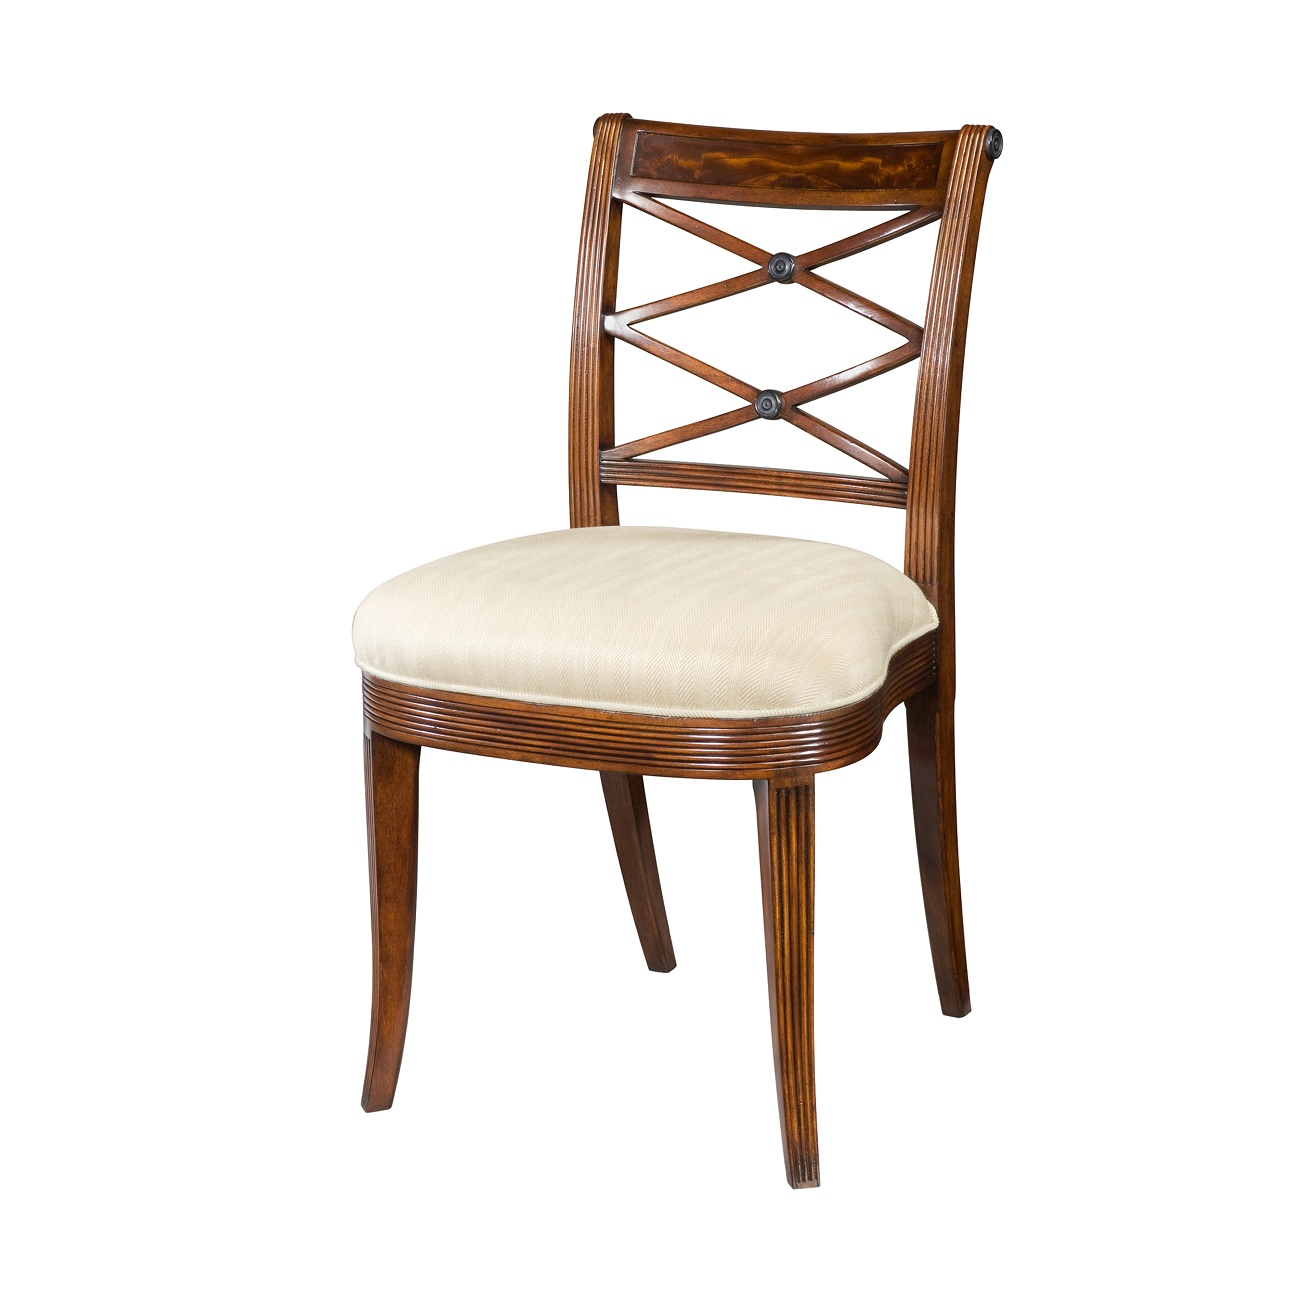 hand carved side chair with reeded decoration the over scroll and double x pierced back above an upholstered seat on sabre legs